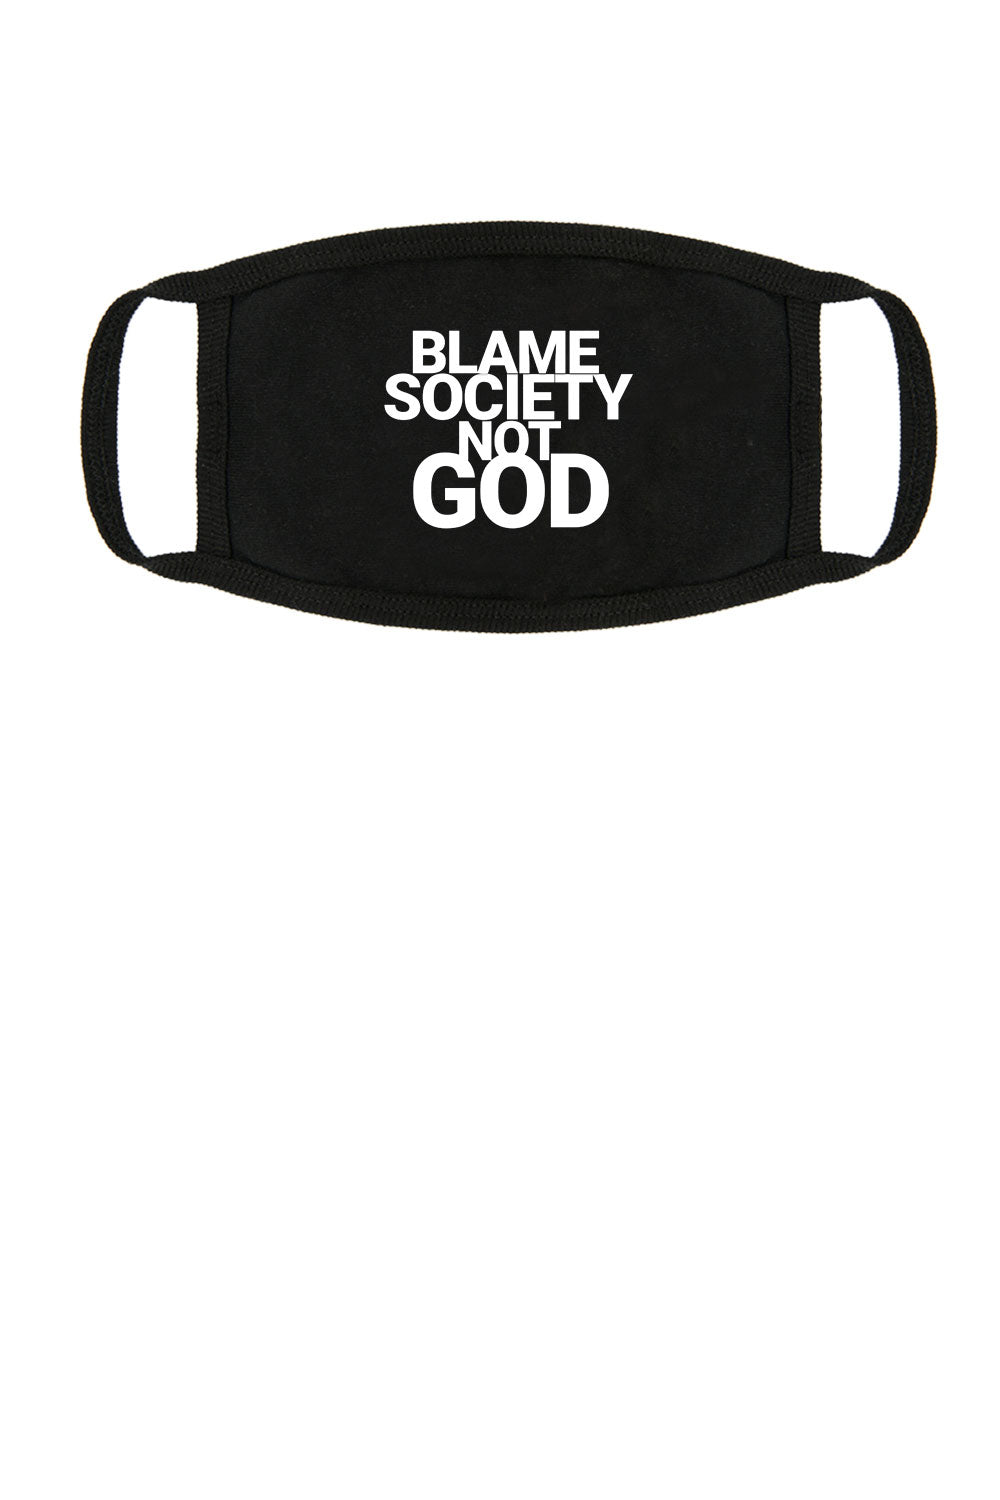 MASK - BLAME SOCIETY NOT GOD